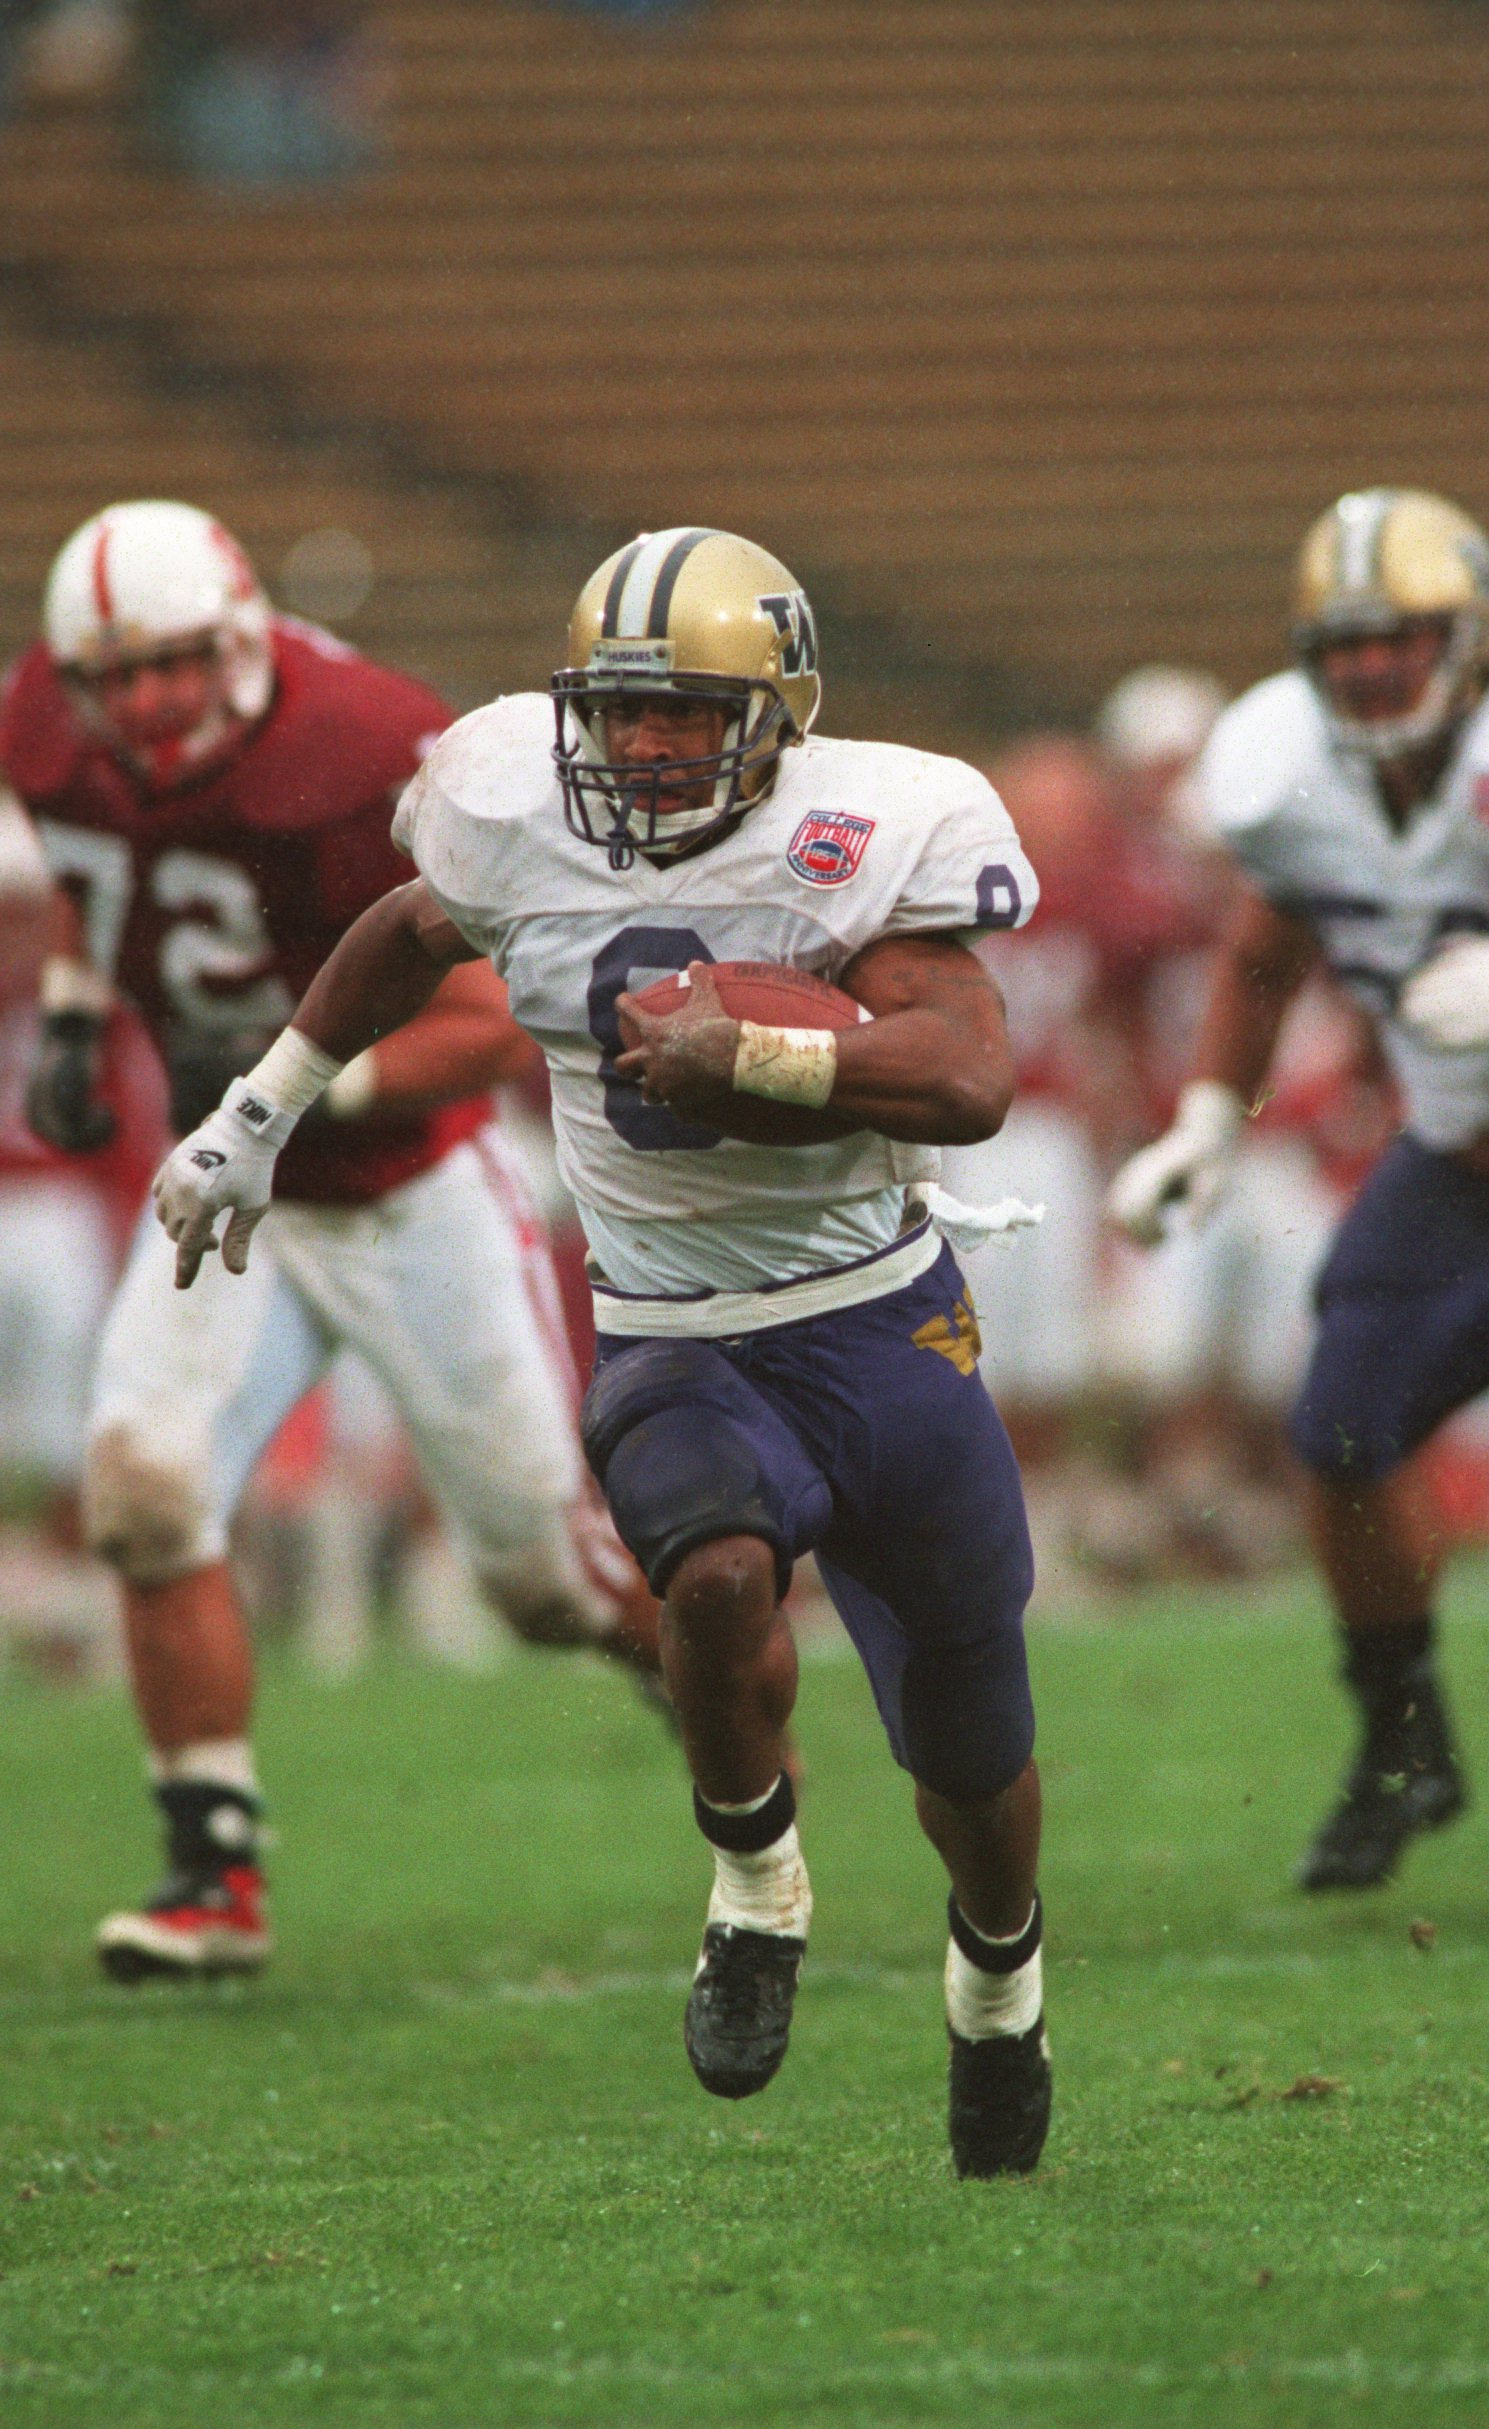 5 Nov 1994: UNIVERSITY OF WASHINGTON RUNNING BACK NAPOLEON KAUFMAN CARRIES THE FOOTBALL DURING THE HUSKIES 46-28 LOSS TO THE UNIVERSITY OF STANFORD AT STANFORD STADIUM IN STANFORD, CALIFORNIA.